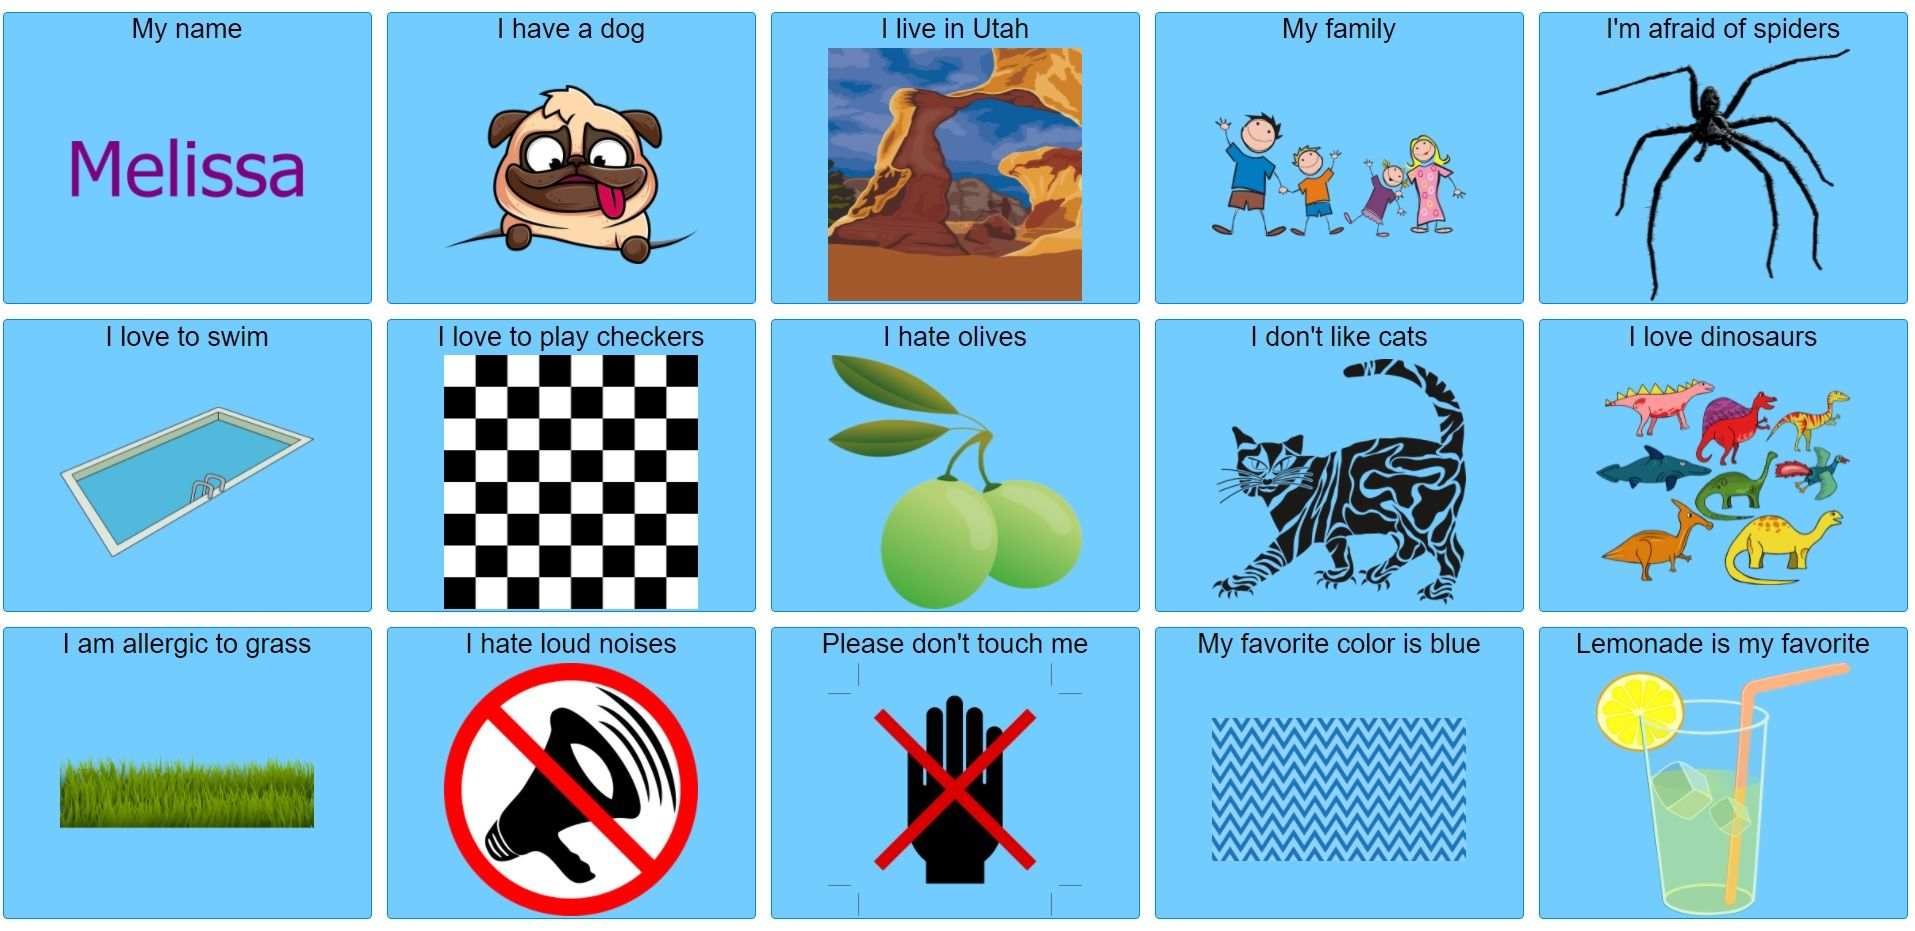 """AAC speech board with 14 buttons which are labeled: """"My name Melissa,"""" """"I have a dog,"""" """"I live in Utah,"""" """"my family"""" """"I love to swim,"""" """"I love to play checkers,"""" """"I hate olives,"""" """"I don't like cats,"""" """"I love dinosaurs,"""" """"I am allergic to grass,"""" """"I hate loud noises,"""" """"Please don't touch me,"""" """"My favorite color is blue,"""" """"Lemonade is my favorite."""""""